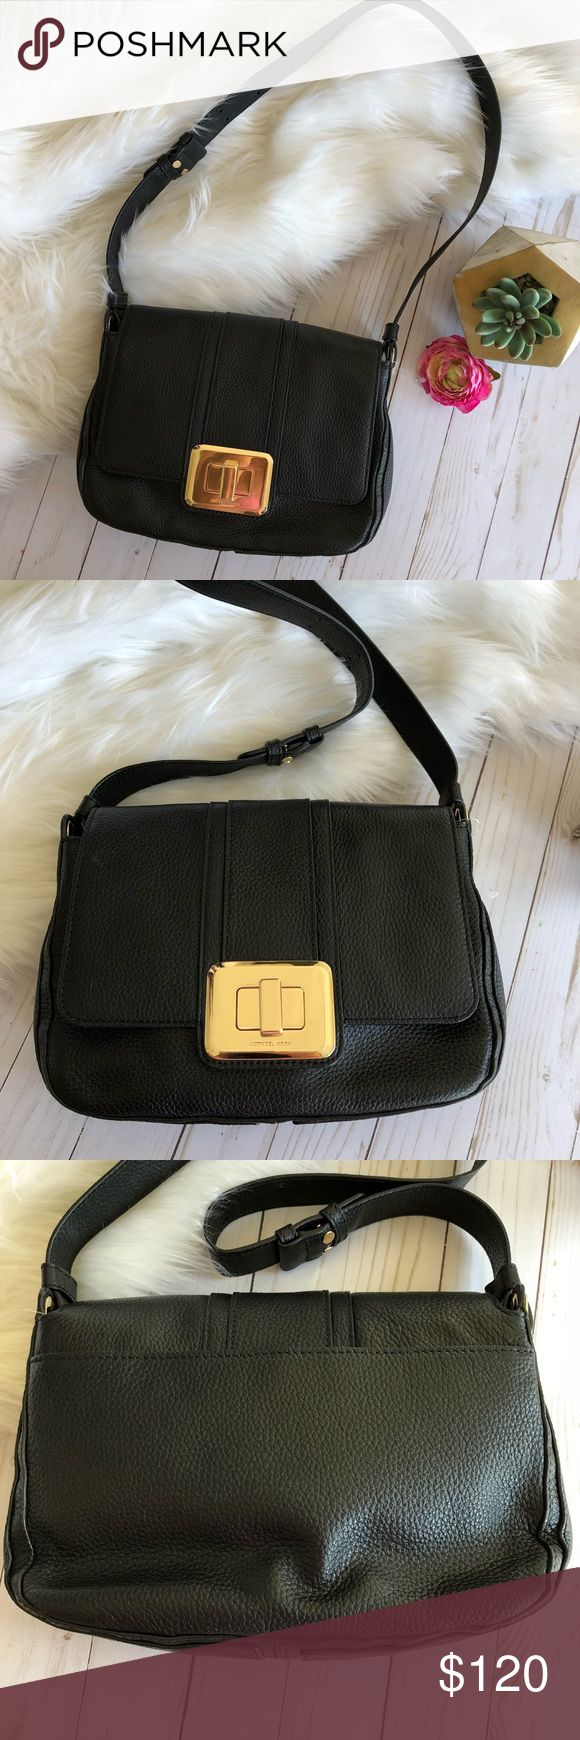 "Michael Kors Black Leather Purse Beautiful pebbled leather shoulder bag adorned with gold hardware. Features a front clasp closure. Does have scratches on the clasp from normal wear. Leather and interior are in excellent condition. Measurements: width 11"" height 8"" strap 34"". Michael Kors Bags Shoulder Bags"